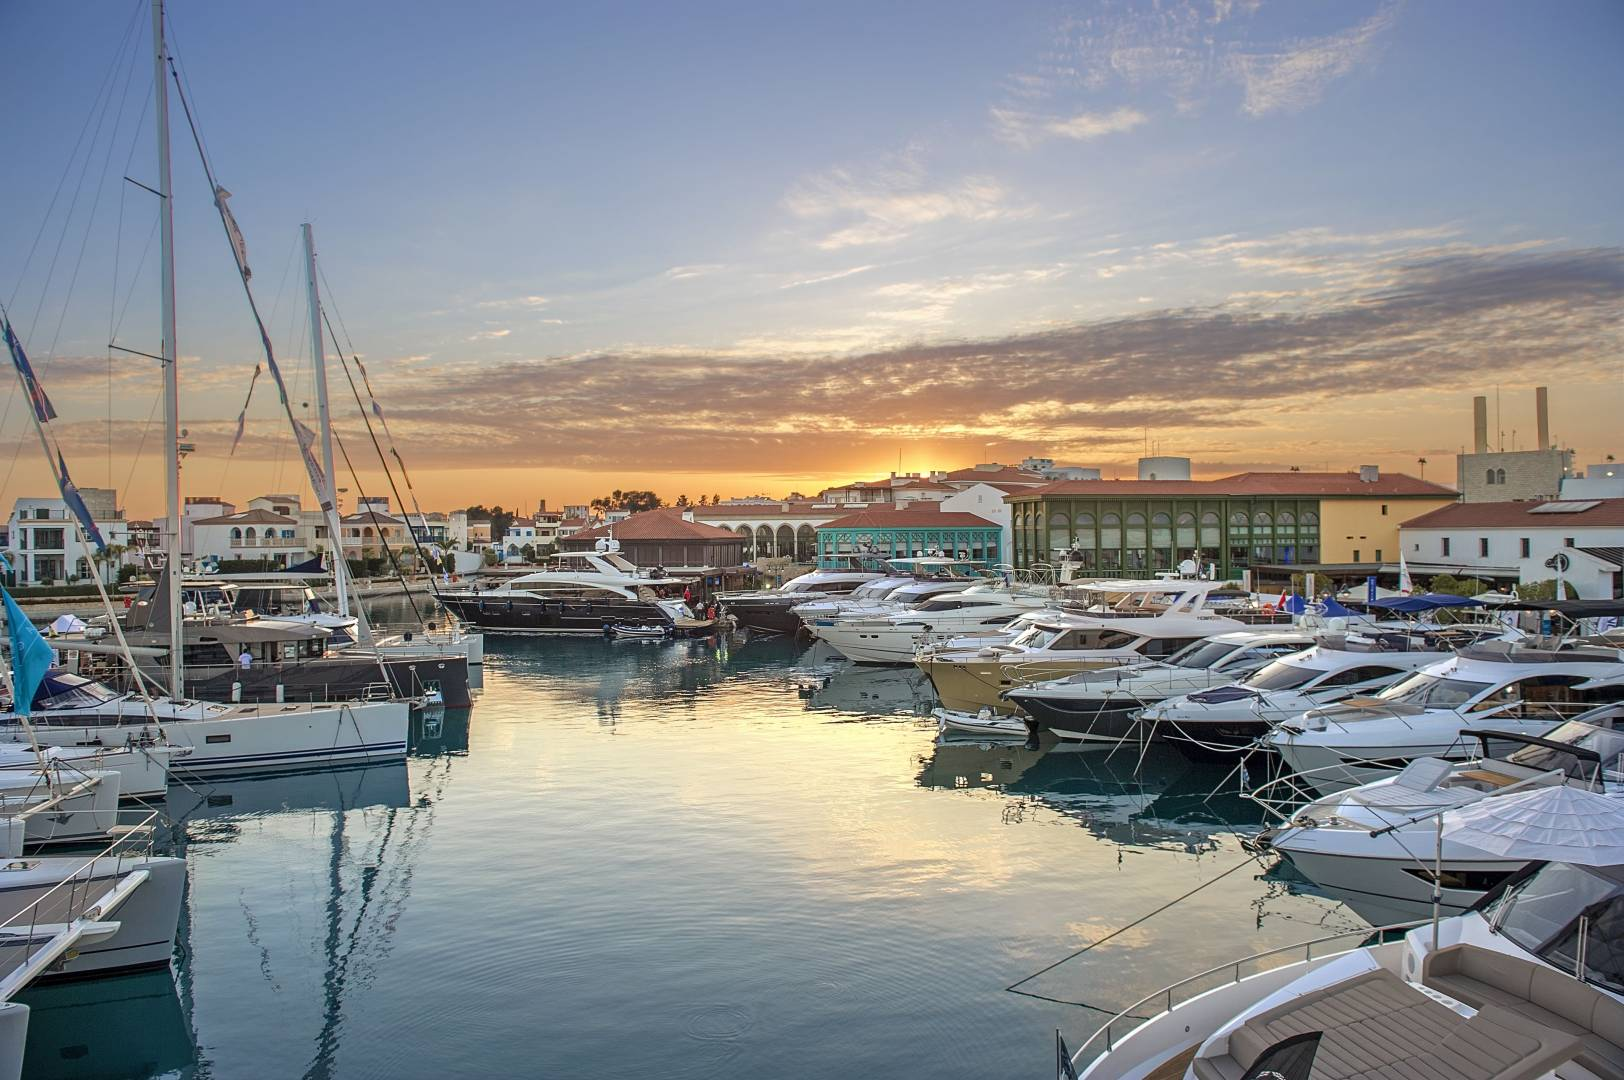 The Limassol Marina is claiming the Marina of the Year 2020 award